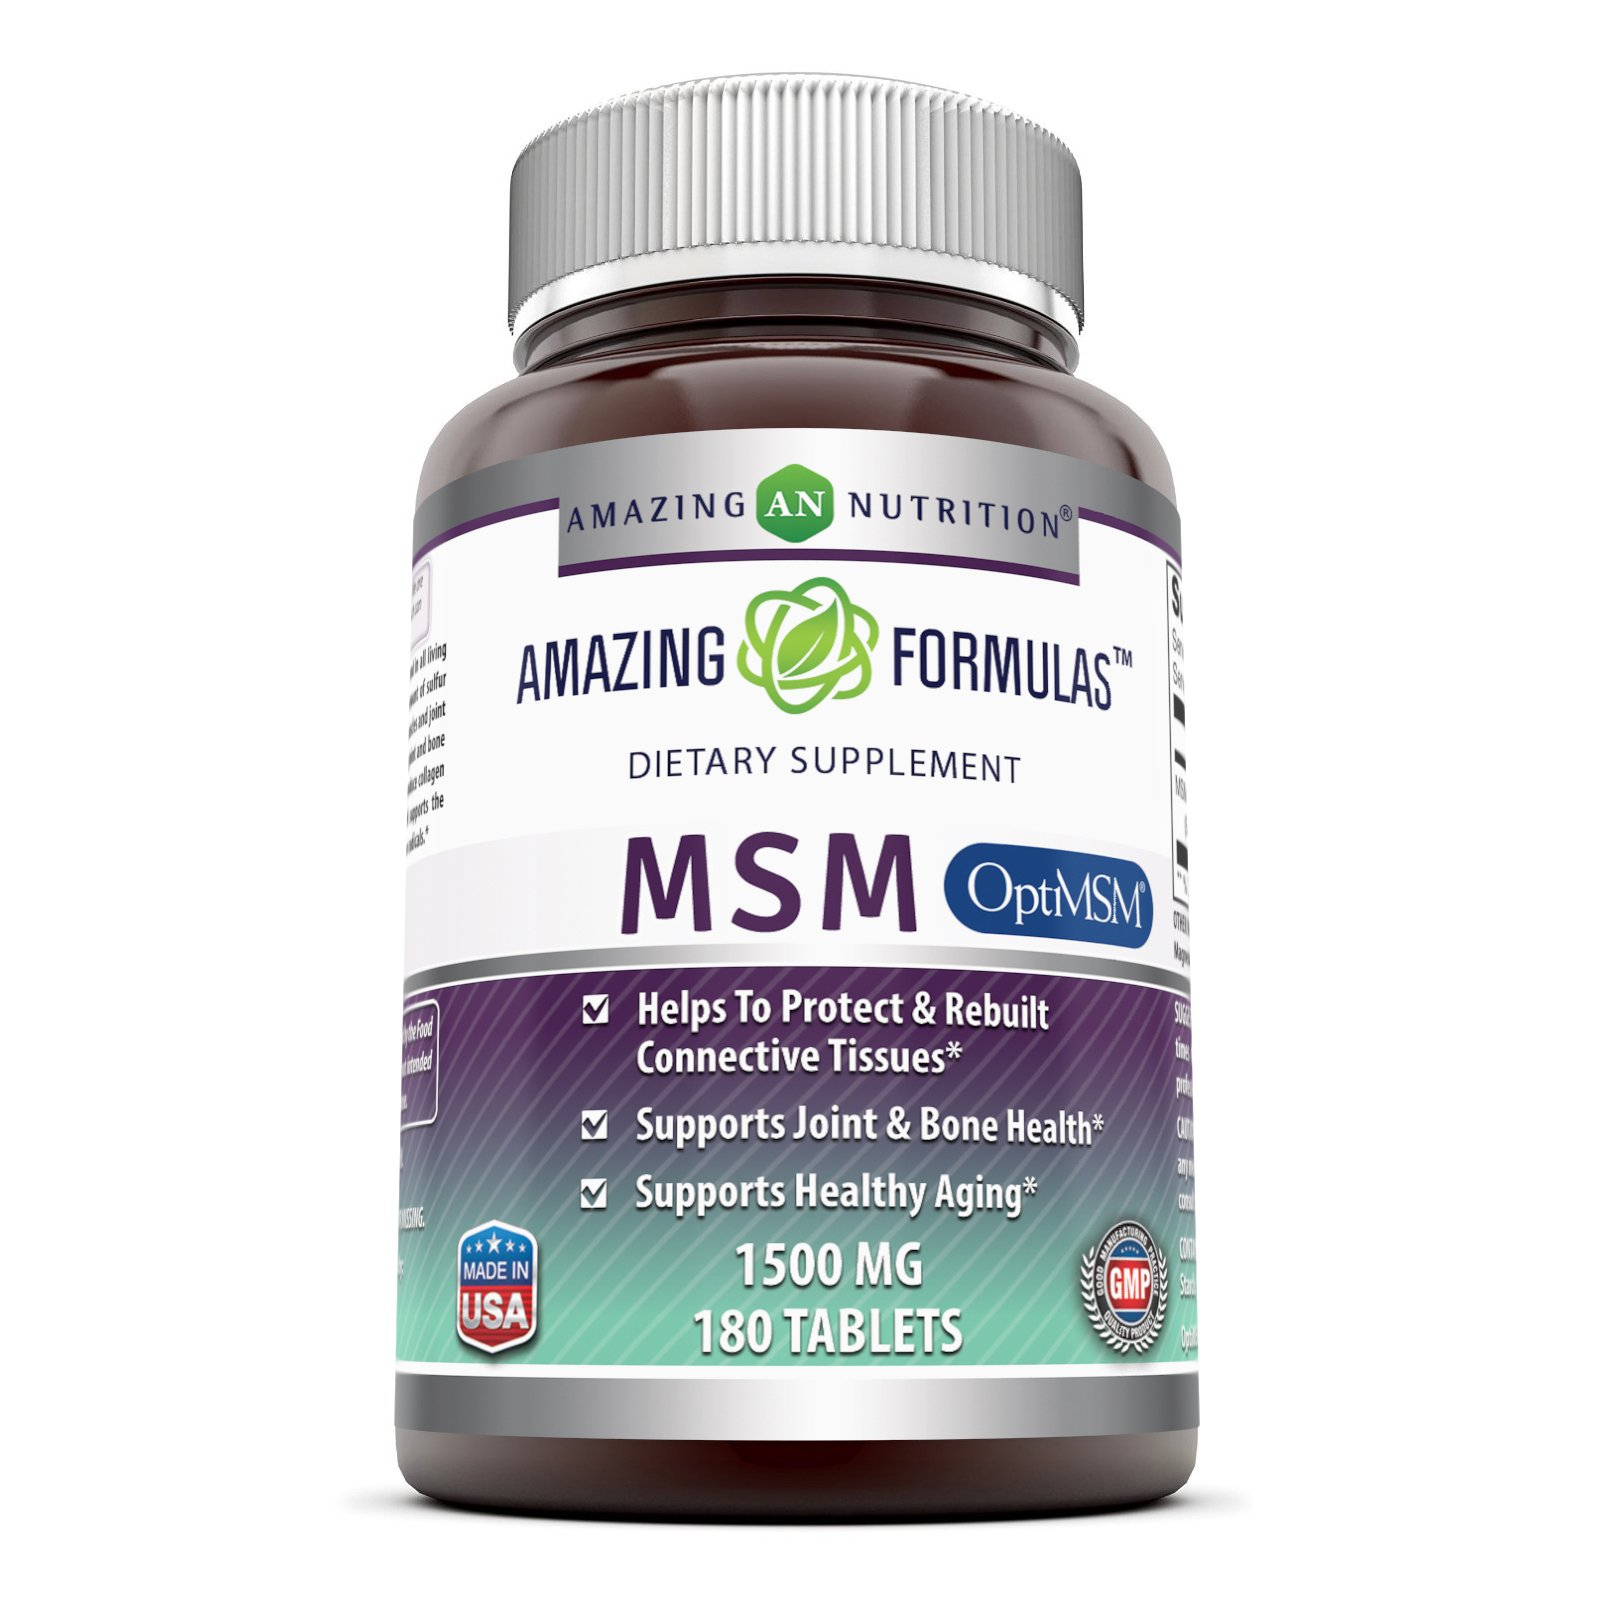 Amazing Formulas OptiMSM - 1500 mg 180 Tablets - Supports Connective Tissue, Healthy Aging & Joint Function, Skin Health